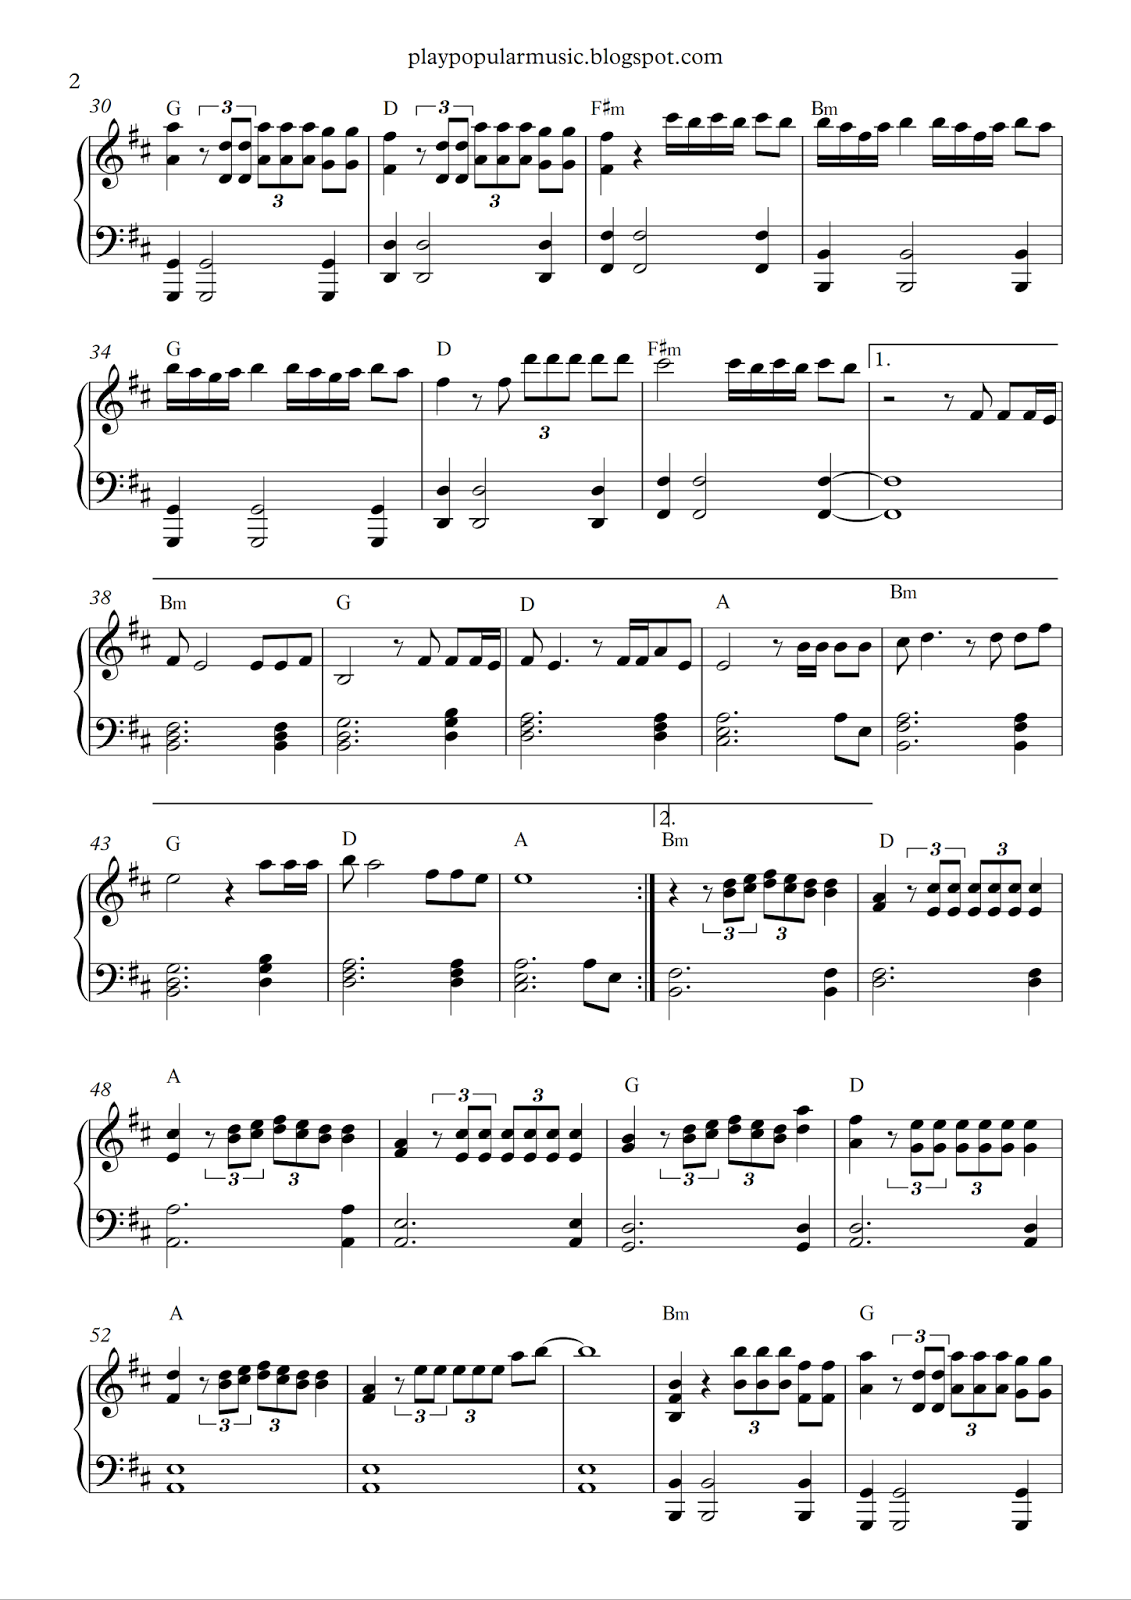 zayn malik, let me, sheet music, piano notes, chords, download, klavier noten, keyboard, guitar, tabs, how to play, guide, tutorial, lesson